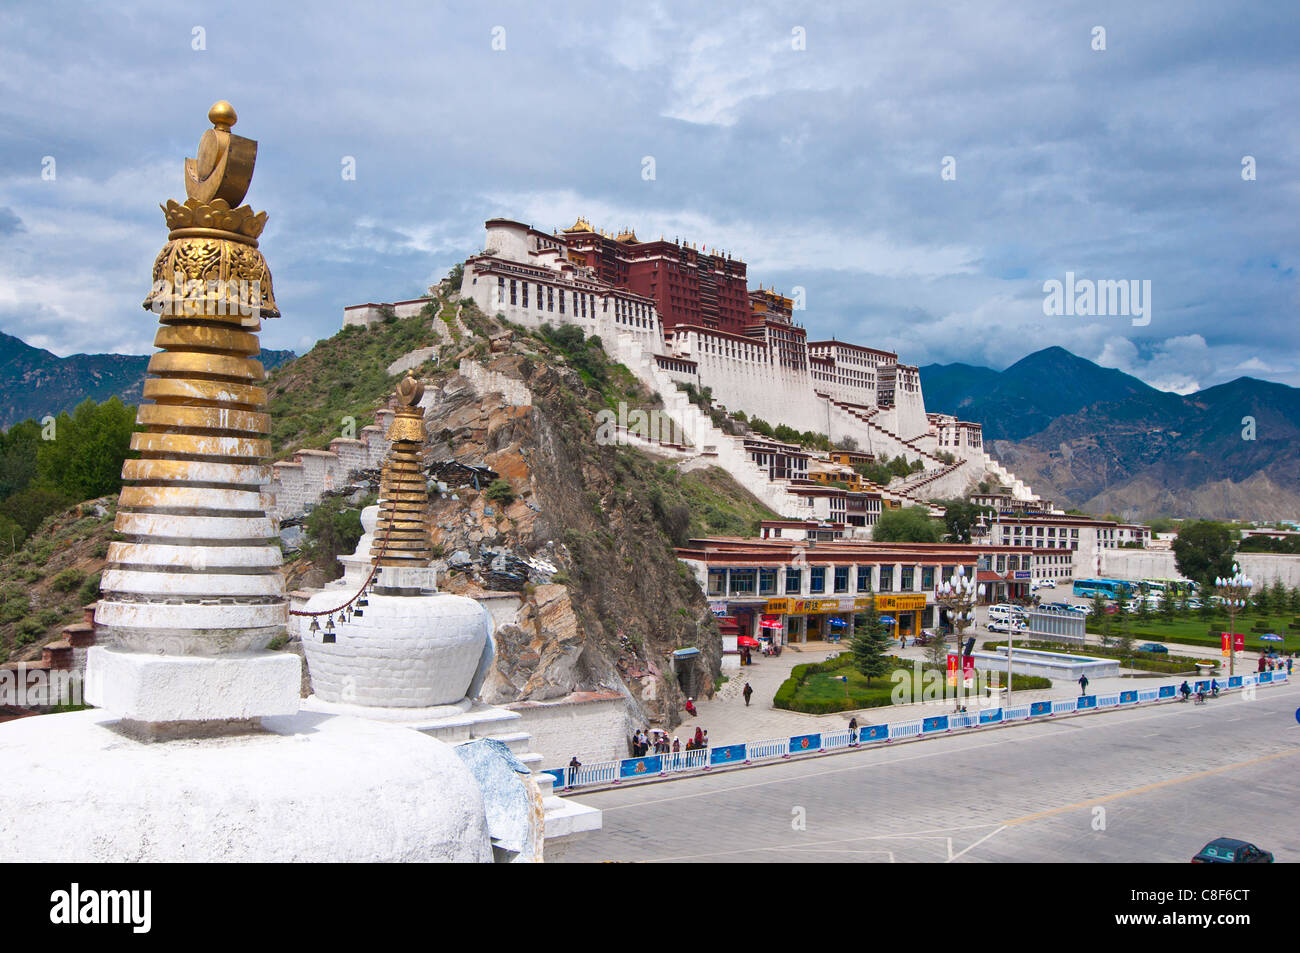 The Potala Palace former chief residence of the Dalai Lama, UNESCO World Heritage Site, Lhasa, Tibet, China - Stock Image